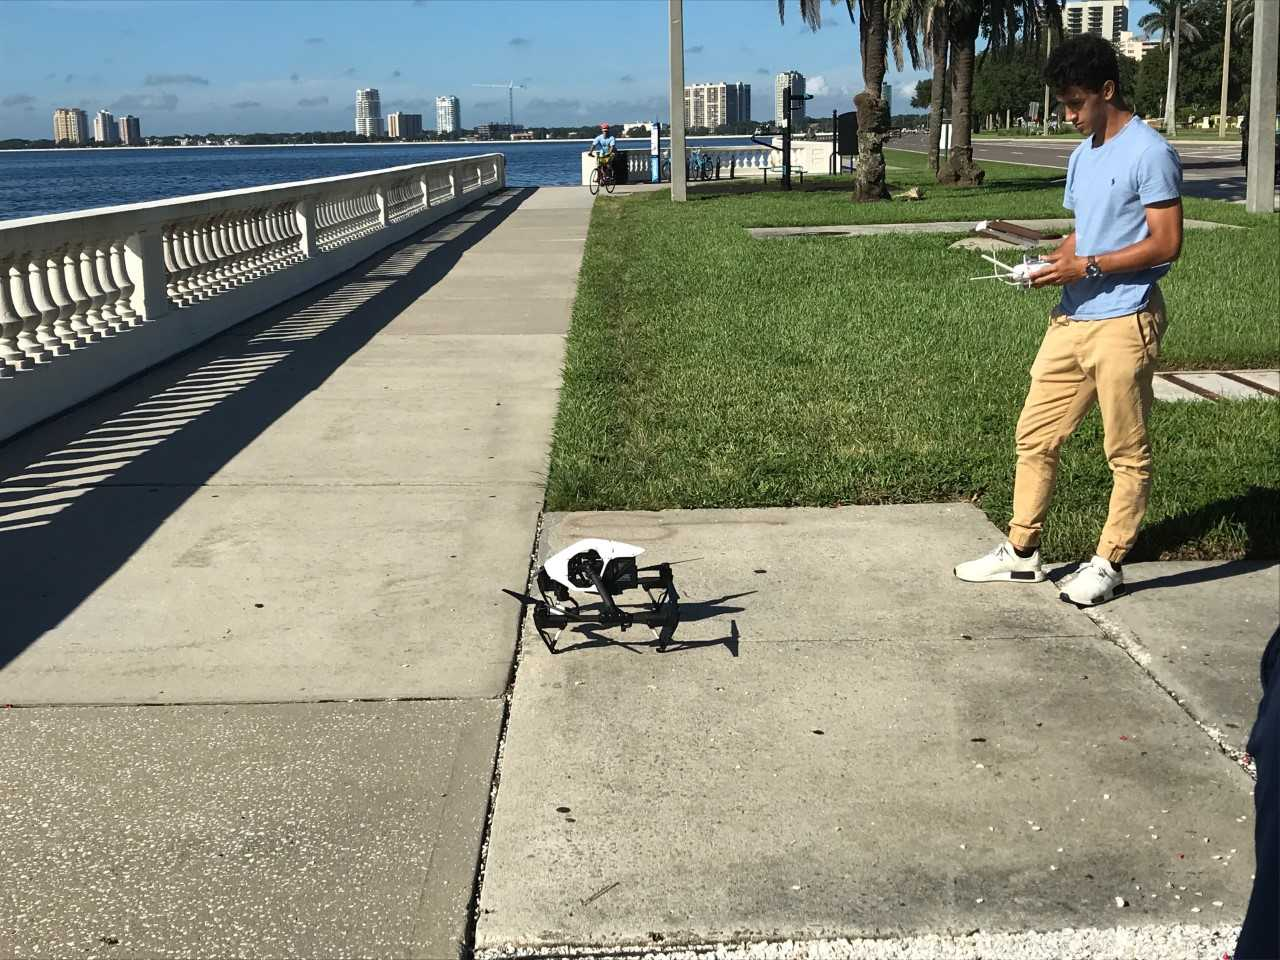 Dylan Gorman and his drone